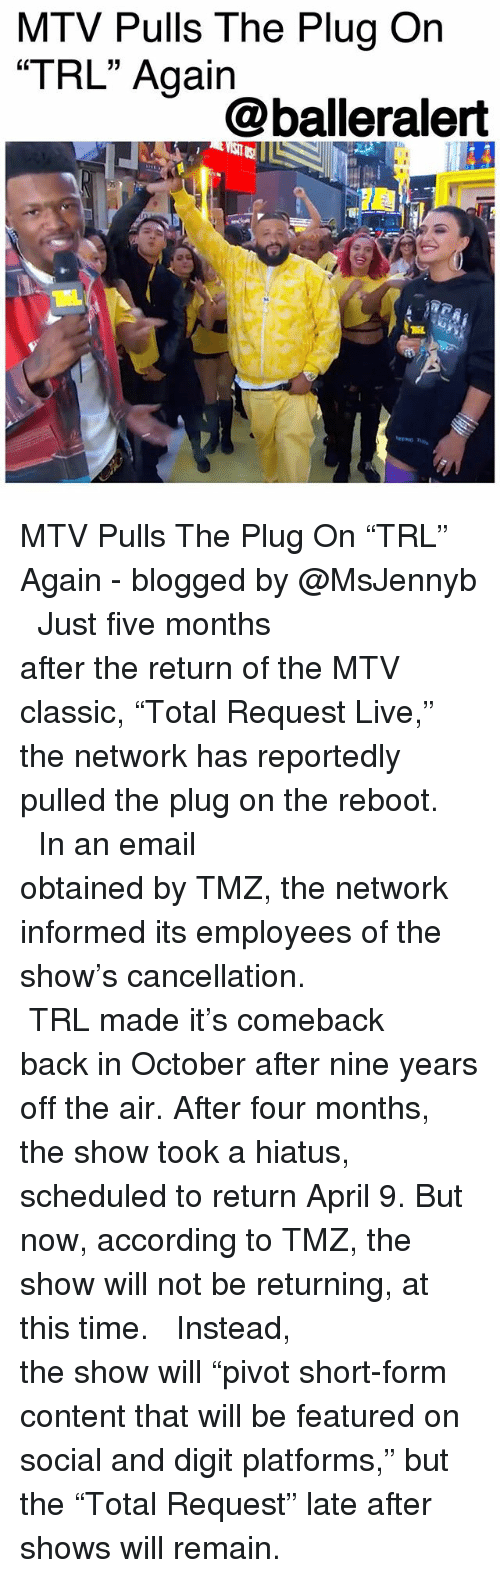 "trl: MTV Pulls The Plug On  ""TRL"" Again  15  @balleralert MTV Pulls The Plug On ""TRL"" Again - blogged by @MsJennyb ⠀⠀⠀⠀⠀⠀⠀⠀⠀ ⠀⠀⠀⠀⠀⠀⠀⠀⠀ Just five months after the return of the MTV classic, ""Total Request Live,"" the network has reportedly pulled the plug on the reboot. ⠀⠀⠀⠀⠀⠀⠀⠀⠀ ⠀⠀⠀⠀⠀⠀⠀⠀⠀ In an email obtained by TMZ, the network informed its employees of the show's cancellation. ⠀⠀⠀⠀⠀⠀⠀⠀⠀ ⠀⠀⠀⠀⠀⠀⠀⠀⠀ TRL made it's comeback back in October after nine years off the air. After four months, the show took a hiatus, scheduled to return April 9. But now, according to TMZ, the show will not be returning, at this time. ⠀⠀⠀⠀⠀⠀⠀⠀⠀ ⠀⠀⠀⠀⠀⠀⠀⠀⠀ Instead, the show will ""pivot short-form content that will be featured on social and digit platforms,"" but the ""Total Request"" late after shows will remain."